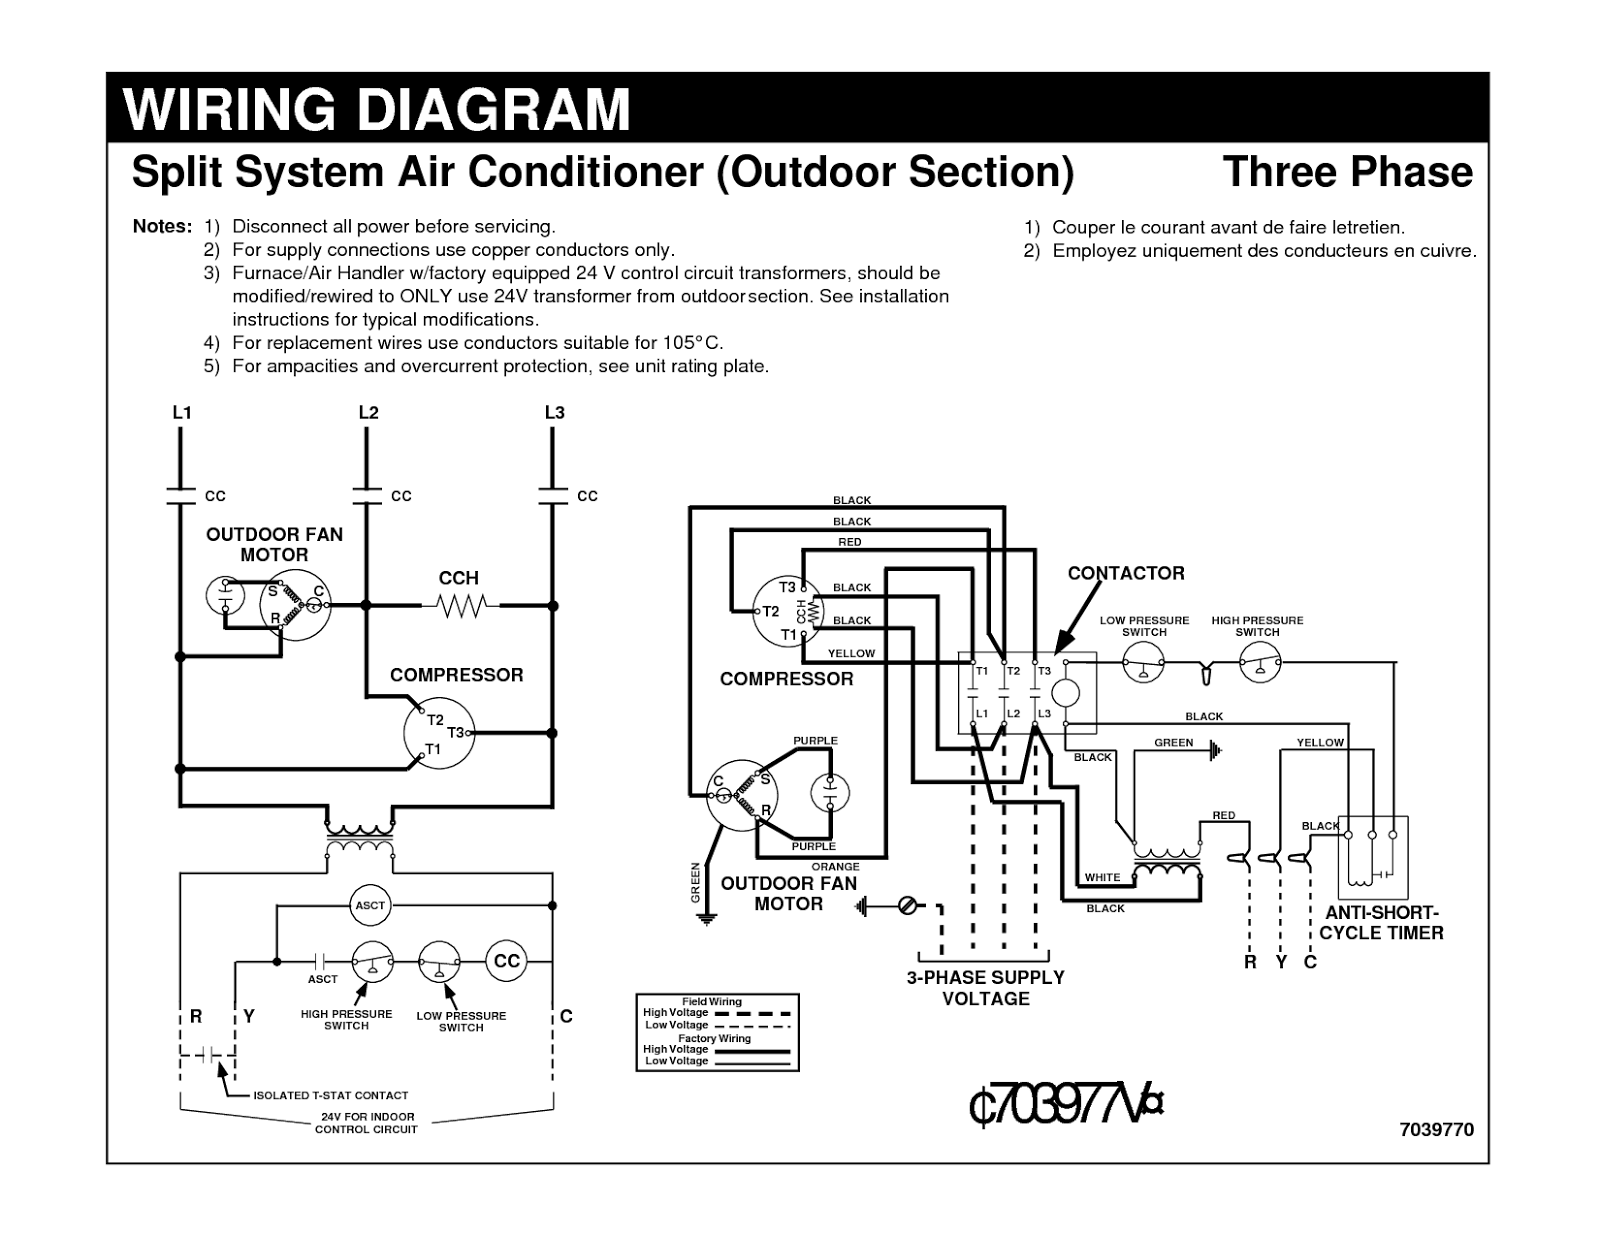 Electric Wiring Diagram Car Vw Transporter T4 Electrical Diagrams For Air Conditioning Systems